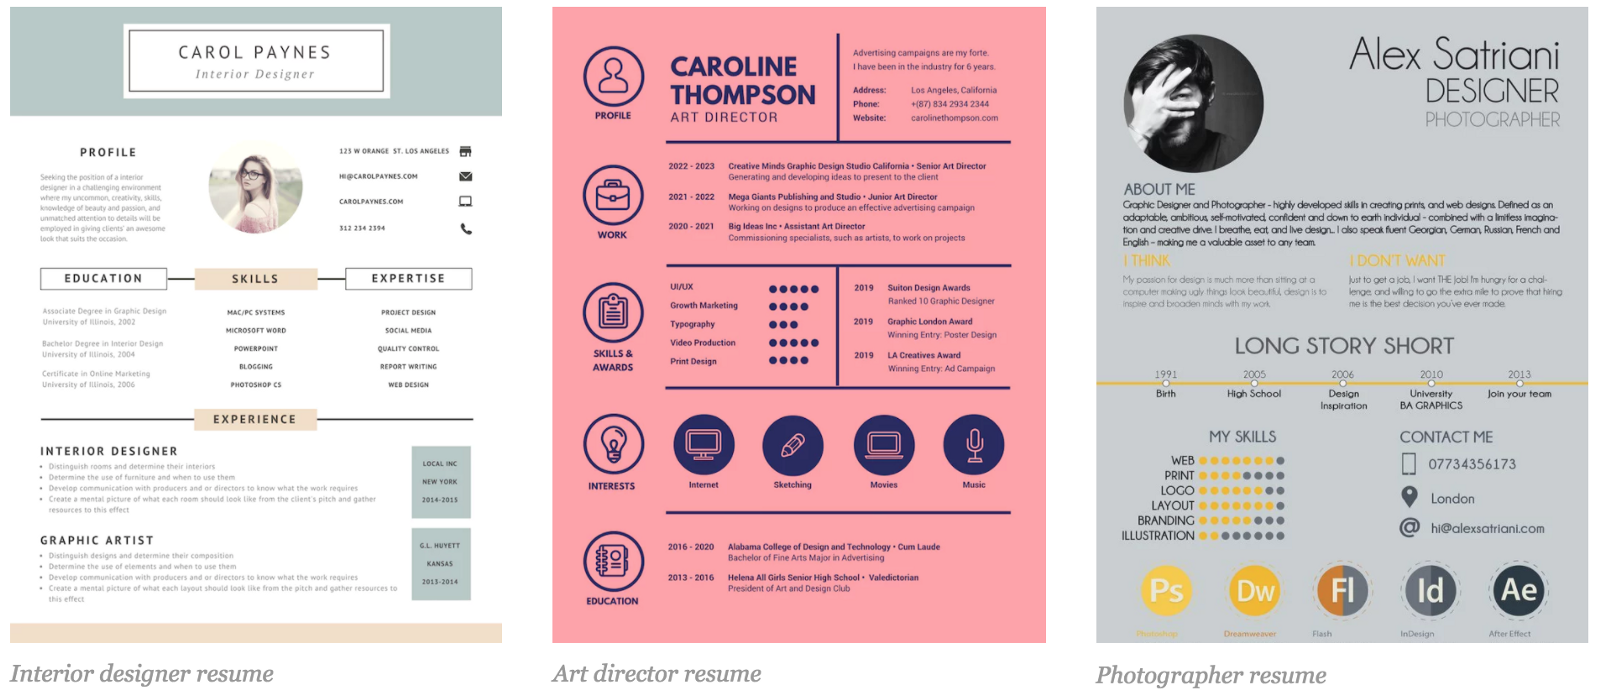 7 Resume Design Principles That Will Get You Hired Faizan Bhatti